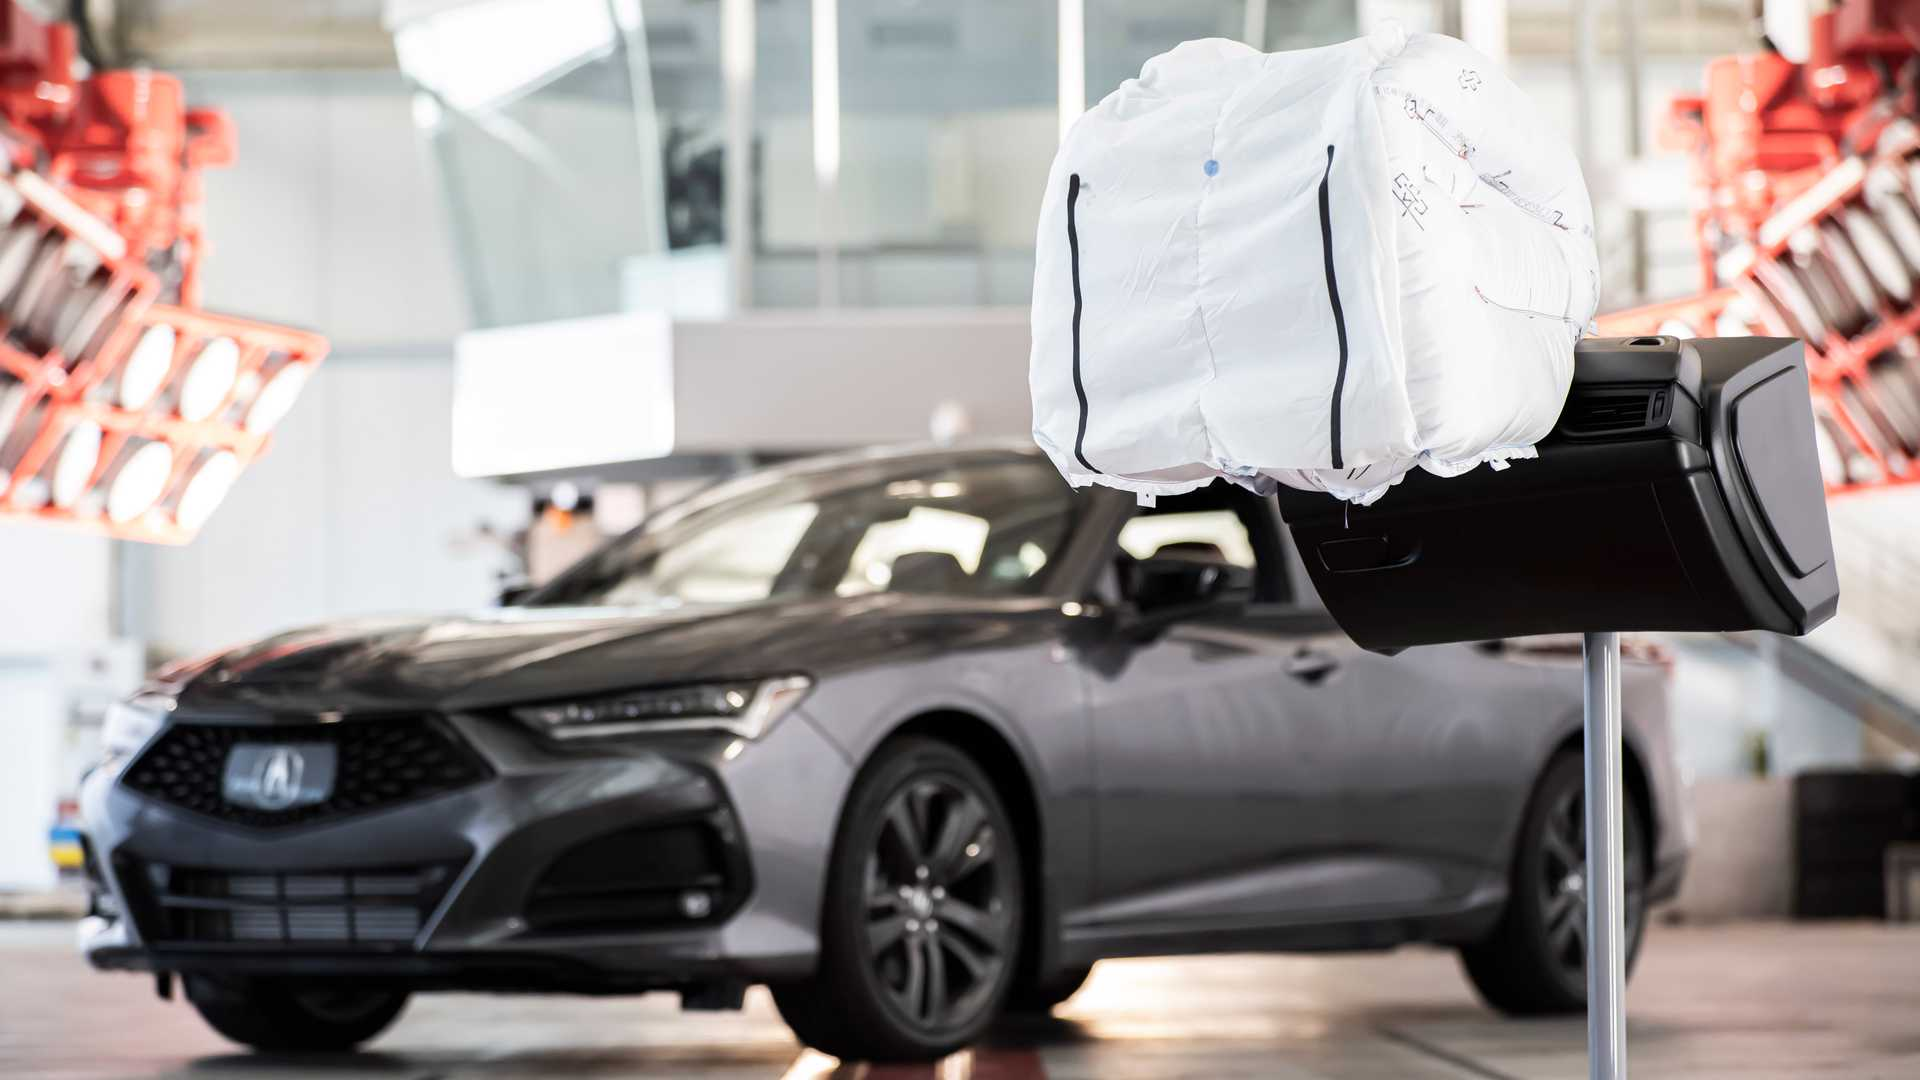 2021 Acura TLX Safety Advances Include A Three-Chamber Airbag